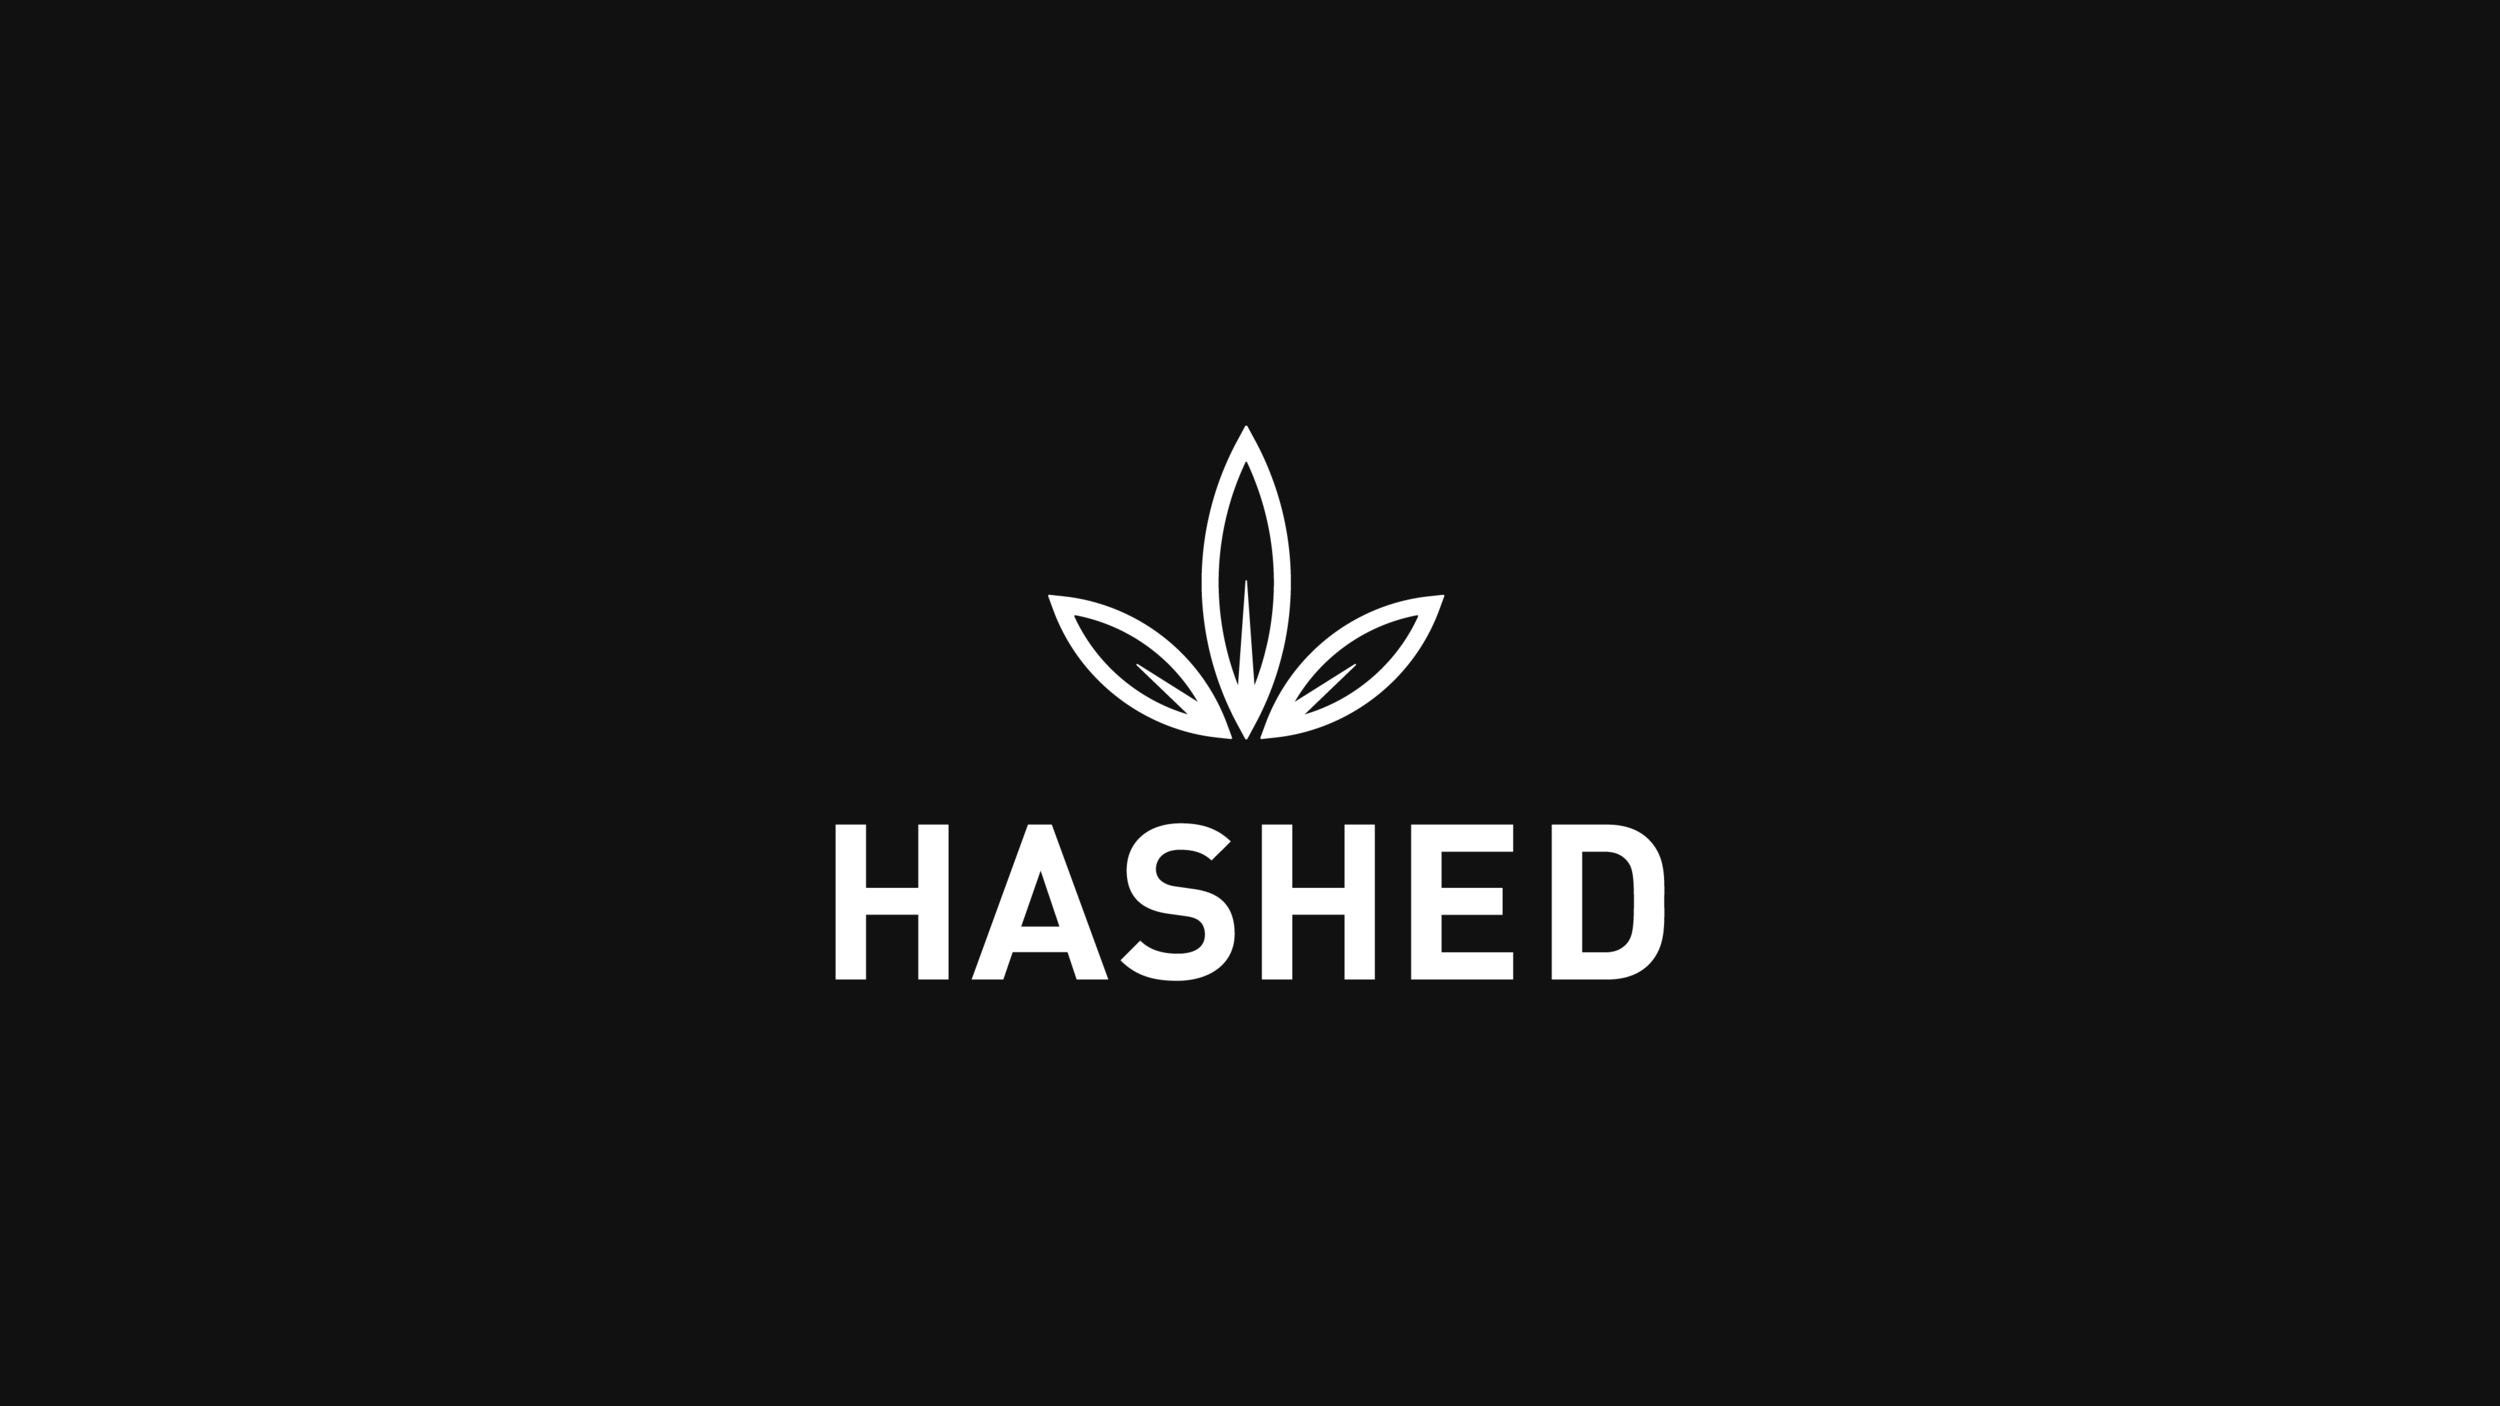 Hashed  - Brand Identity & Packaging Design